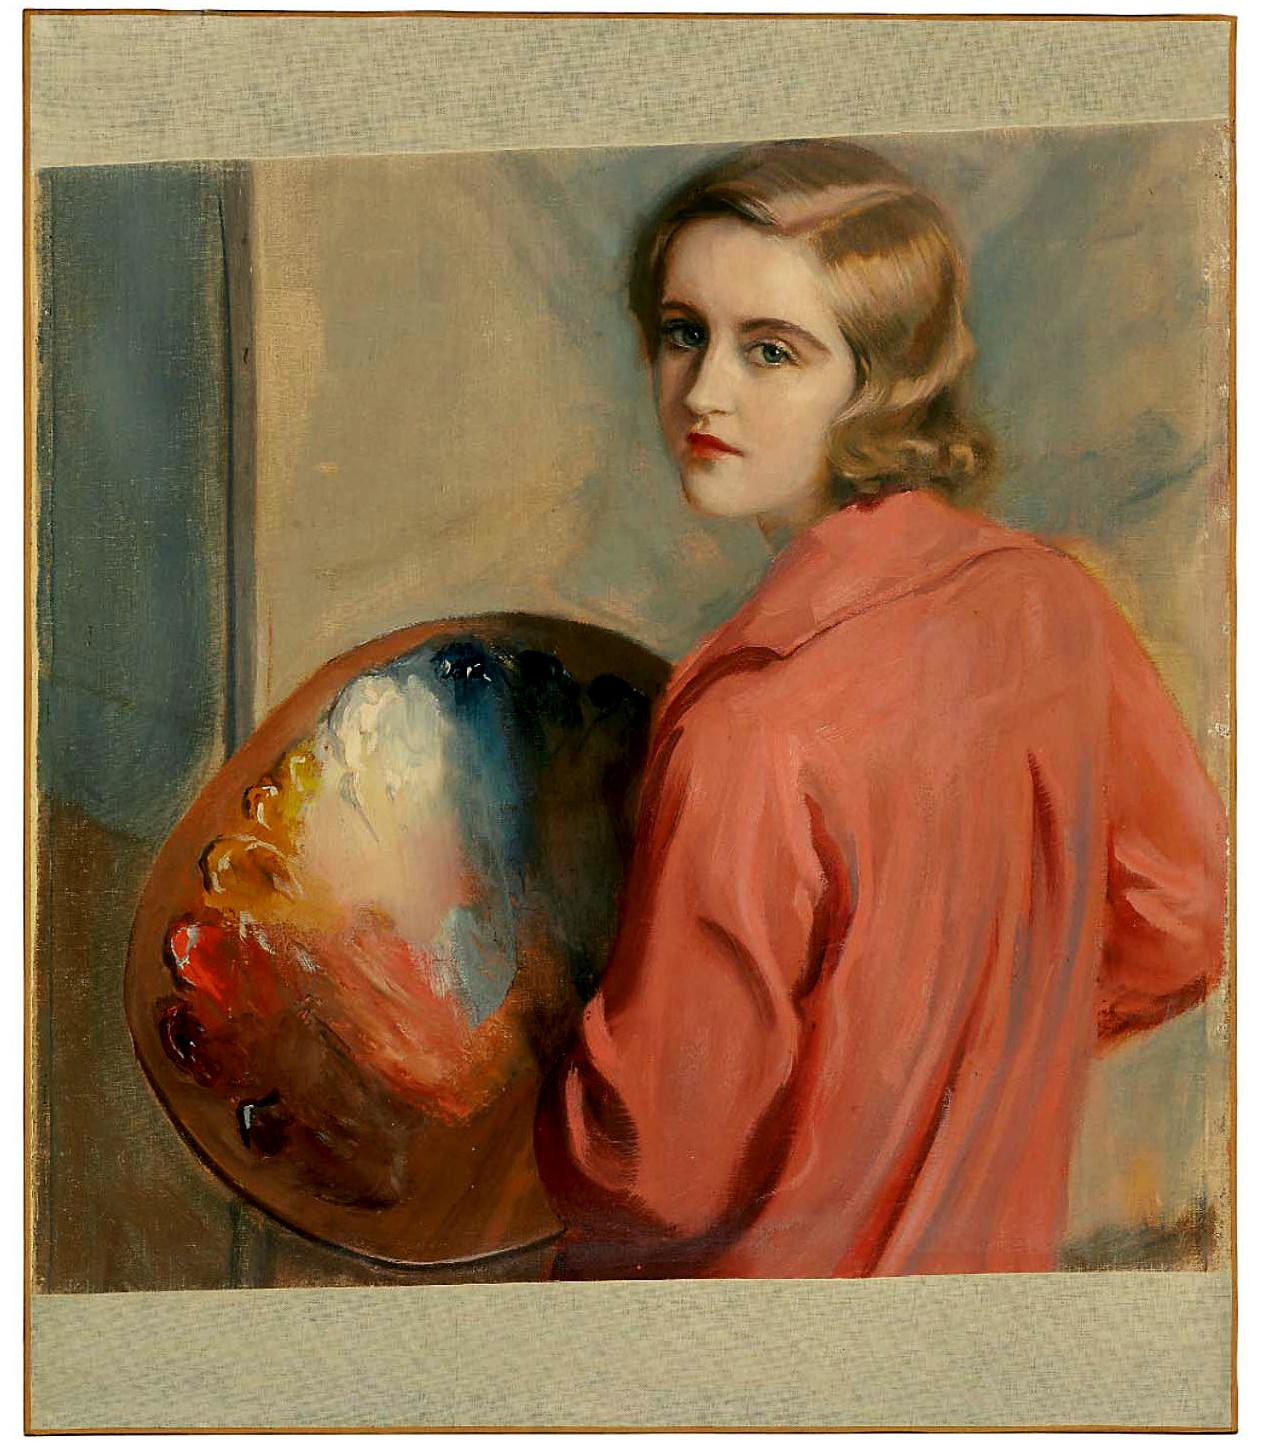 A self-portrait by Huguette Clark.